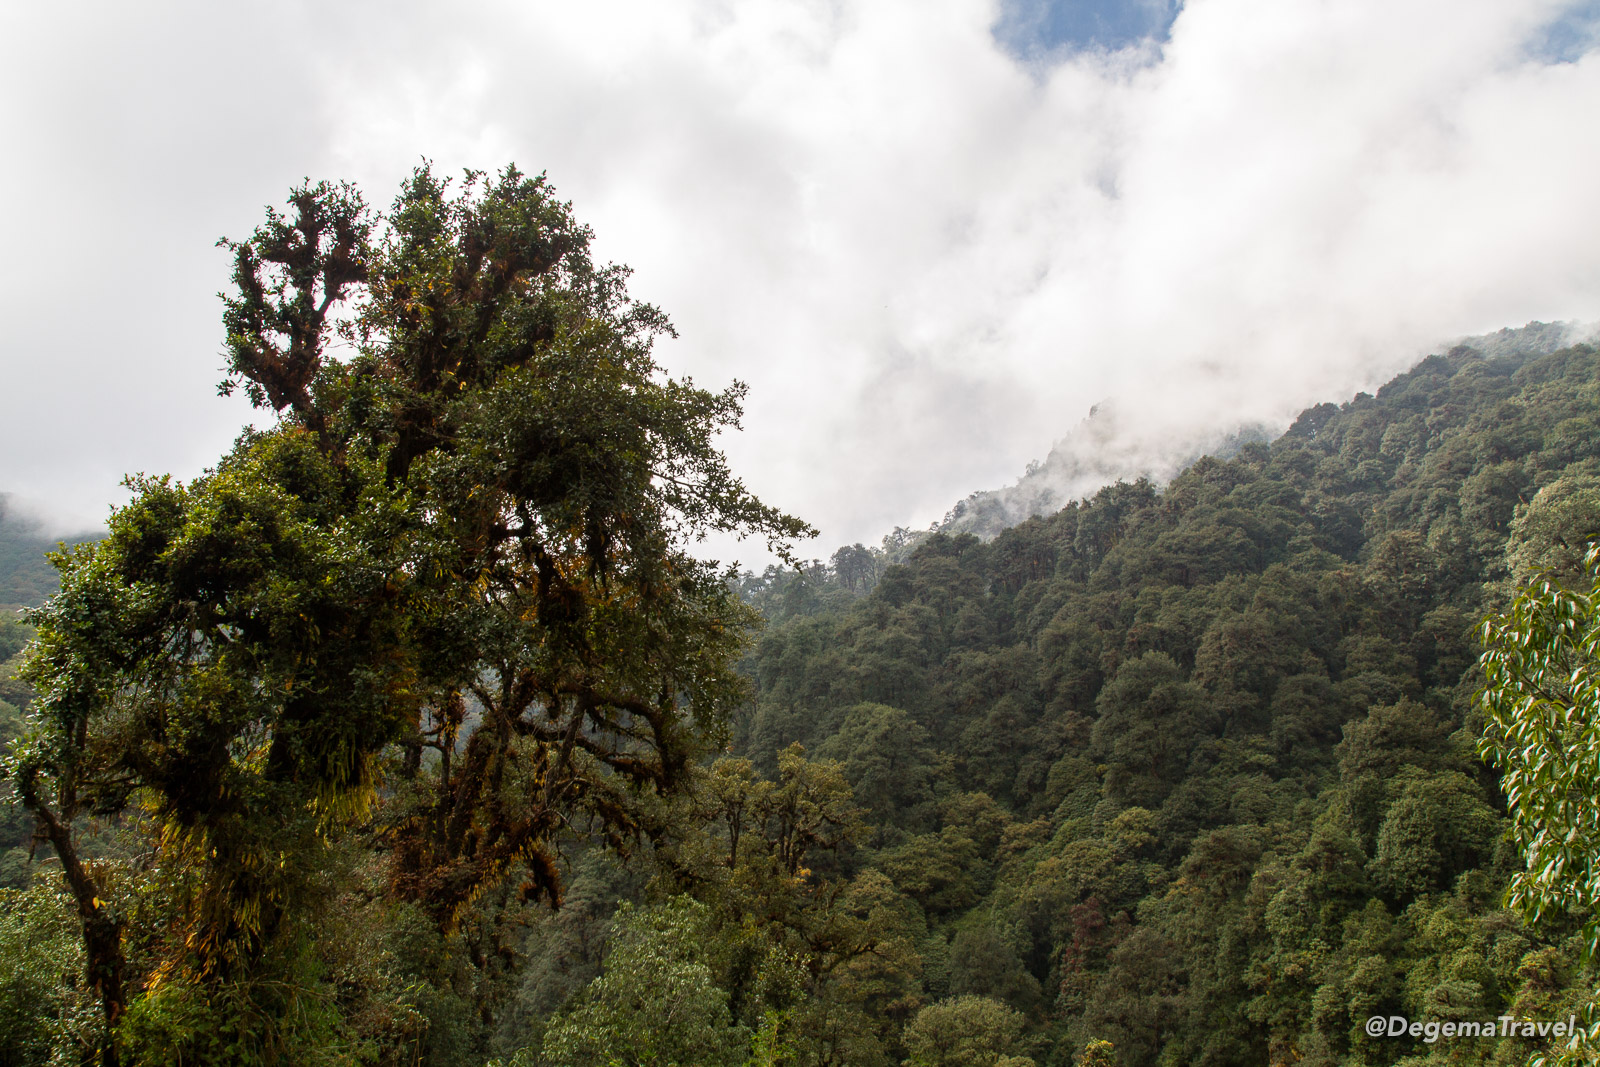 The view along the path towards Ghorepani in the Annapurna Conservation Area, Nepal